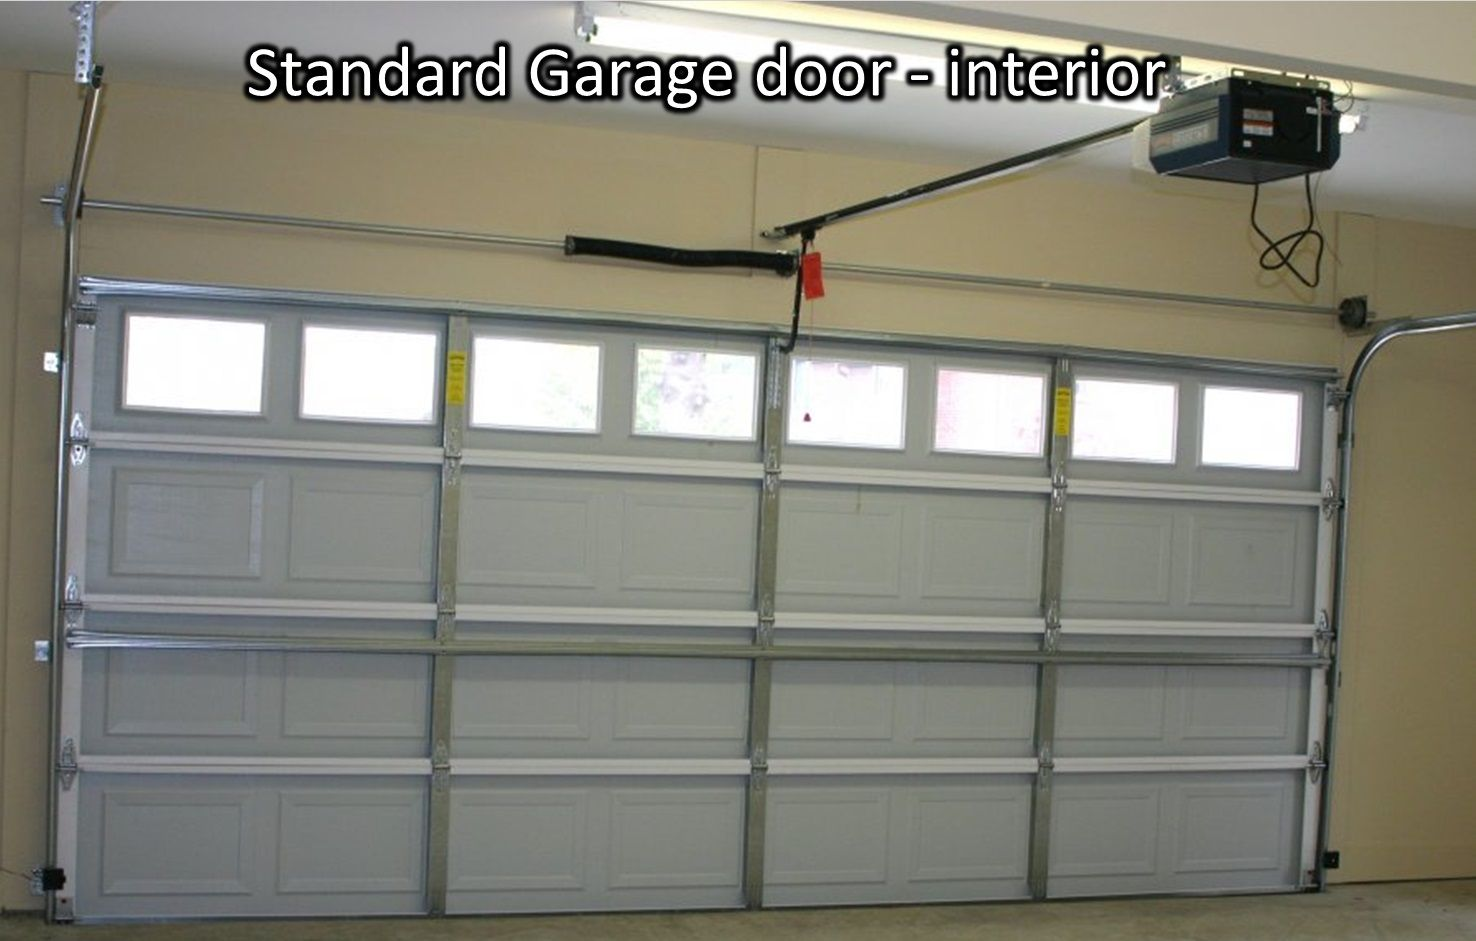 design save latest user door garages collections nation available garage modern home of experience garagedoornationreviews best reviews are buy now s